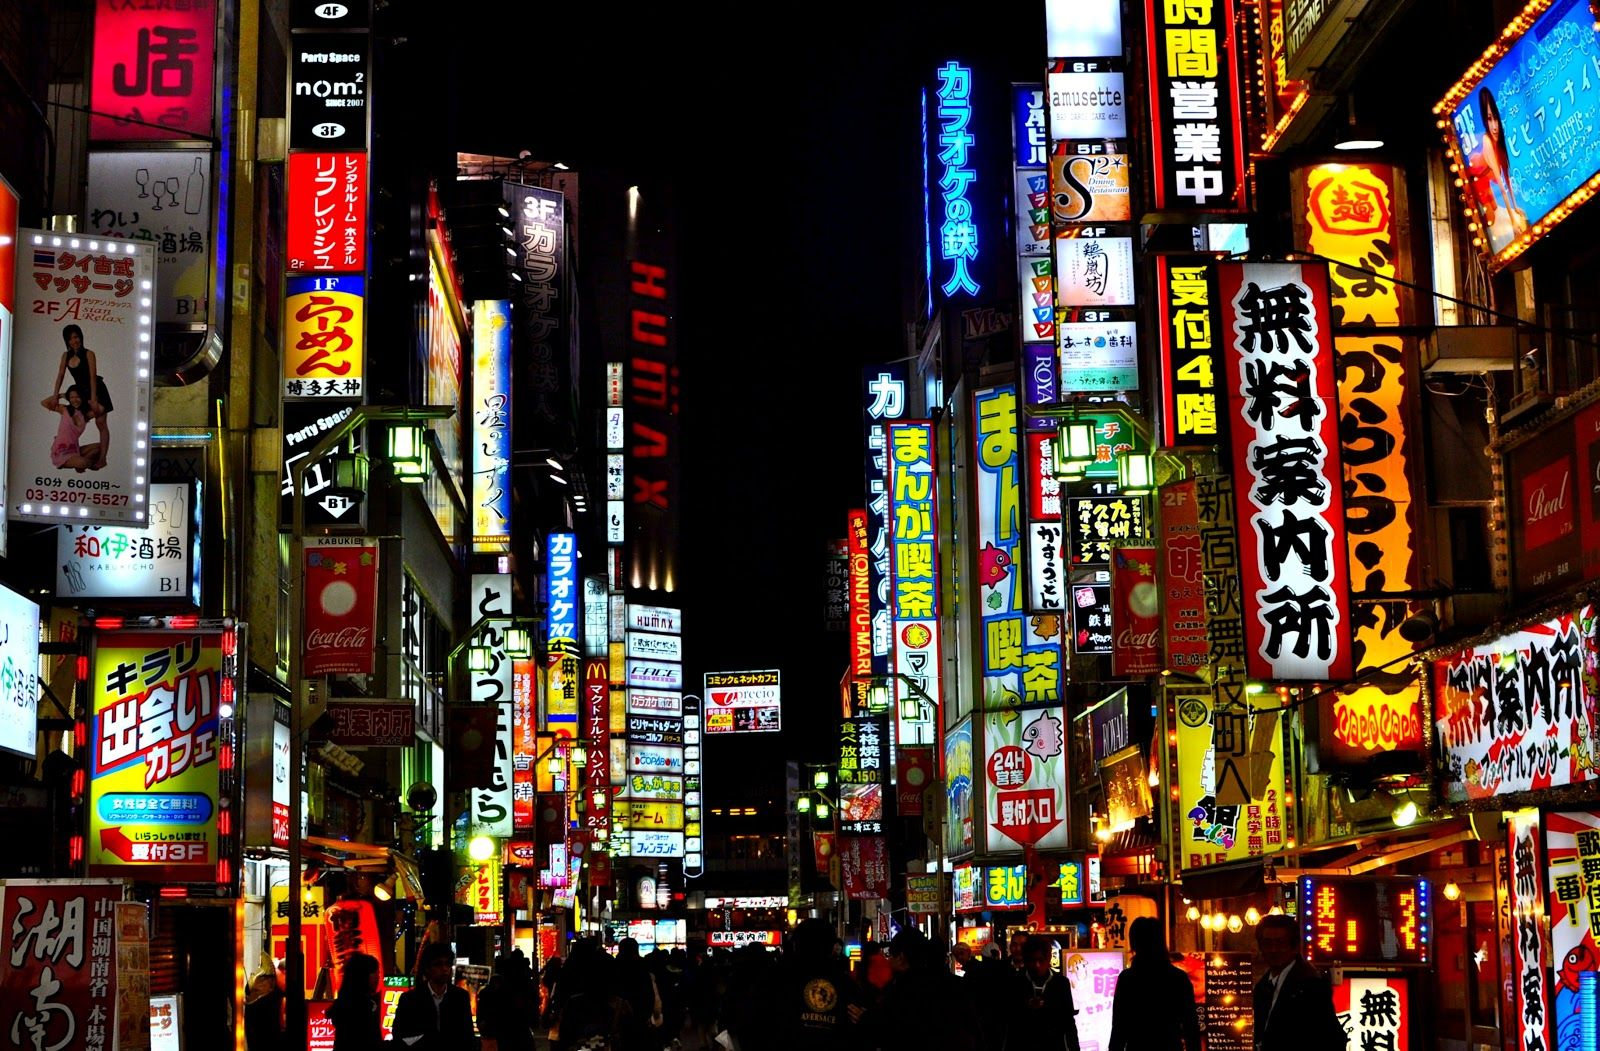 Japan Anime Night Wallpapers - Wallpaper Cave